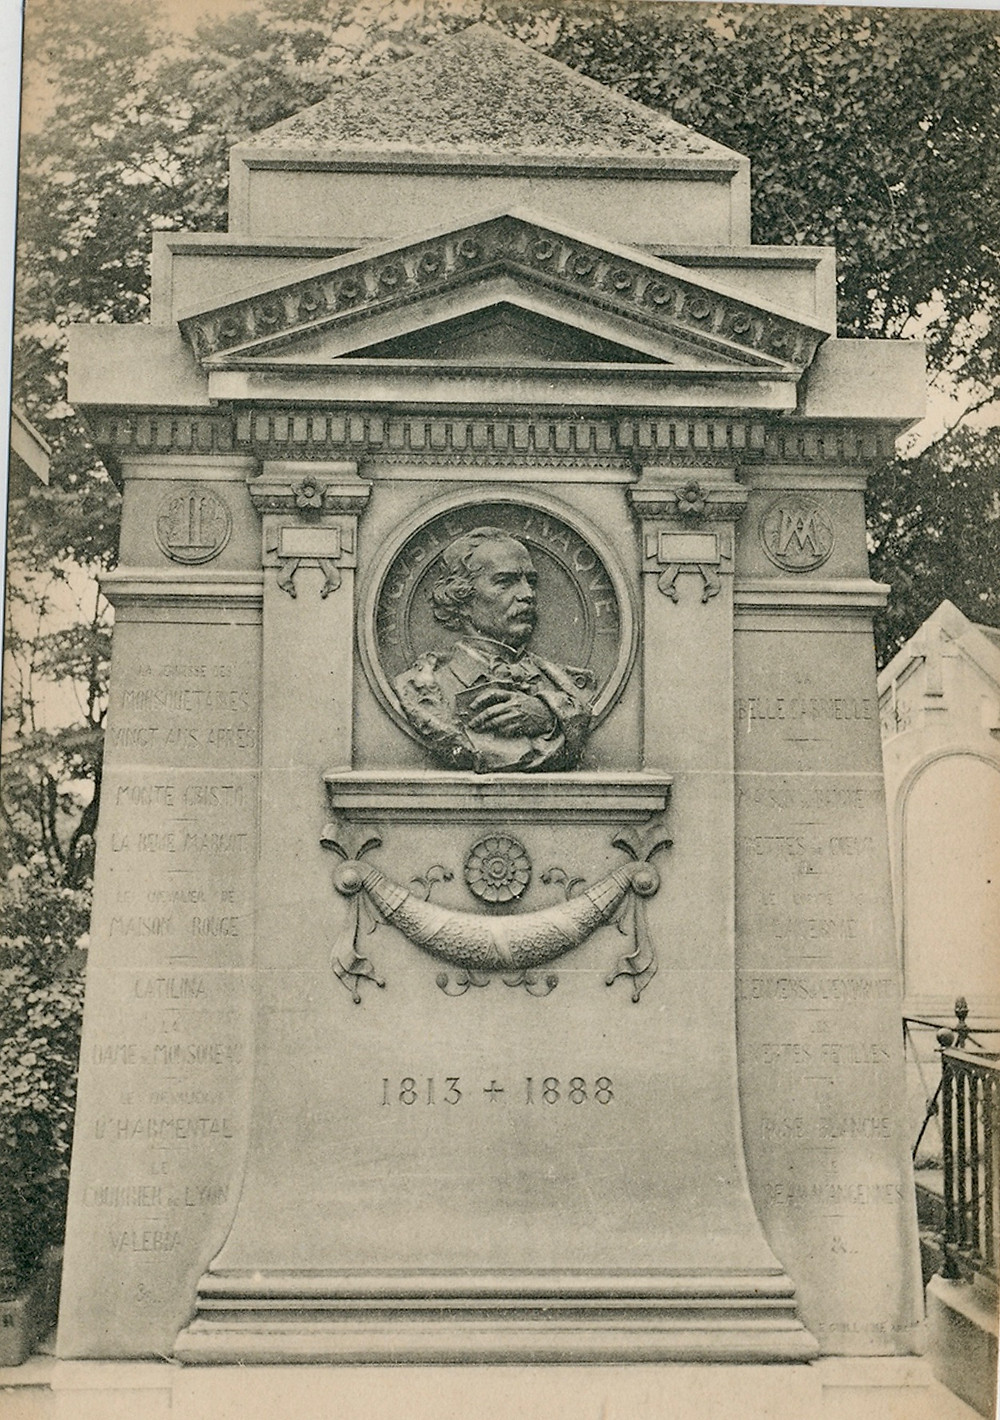 Maquet's gravestone at Pere LaChaise Cemetery. On it, he makes a claim of authorship and you can see the titles of novels attributed solely to Dumas.